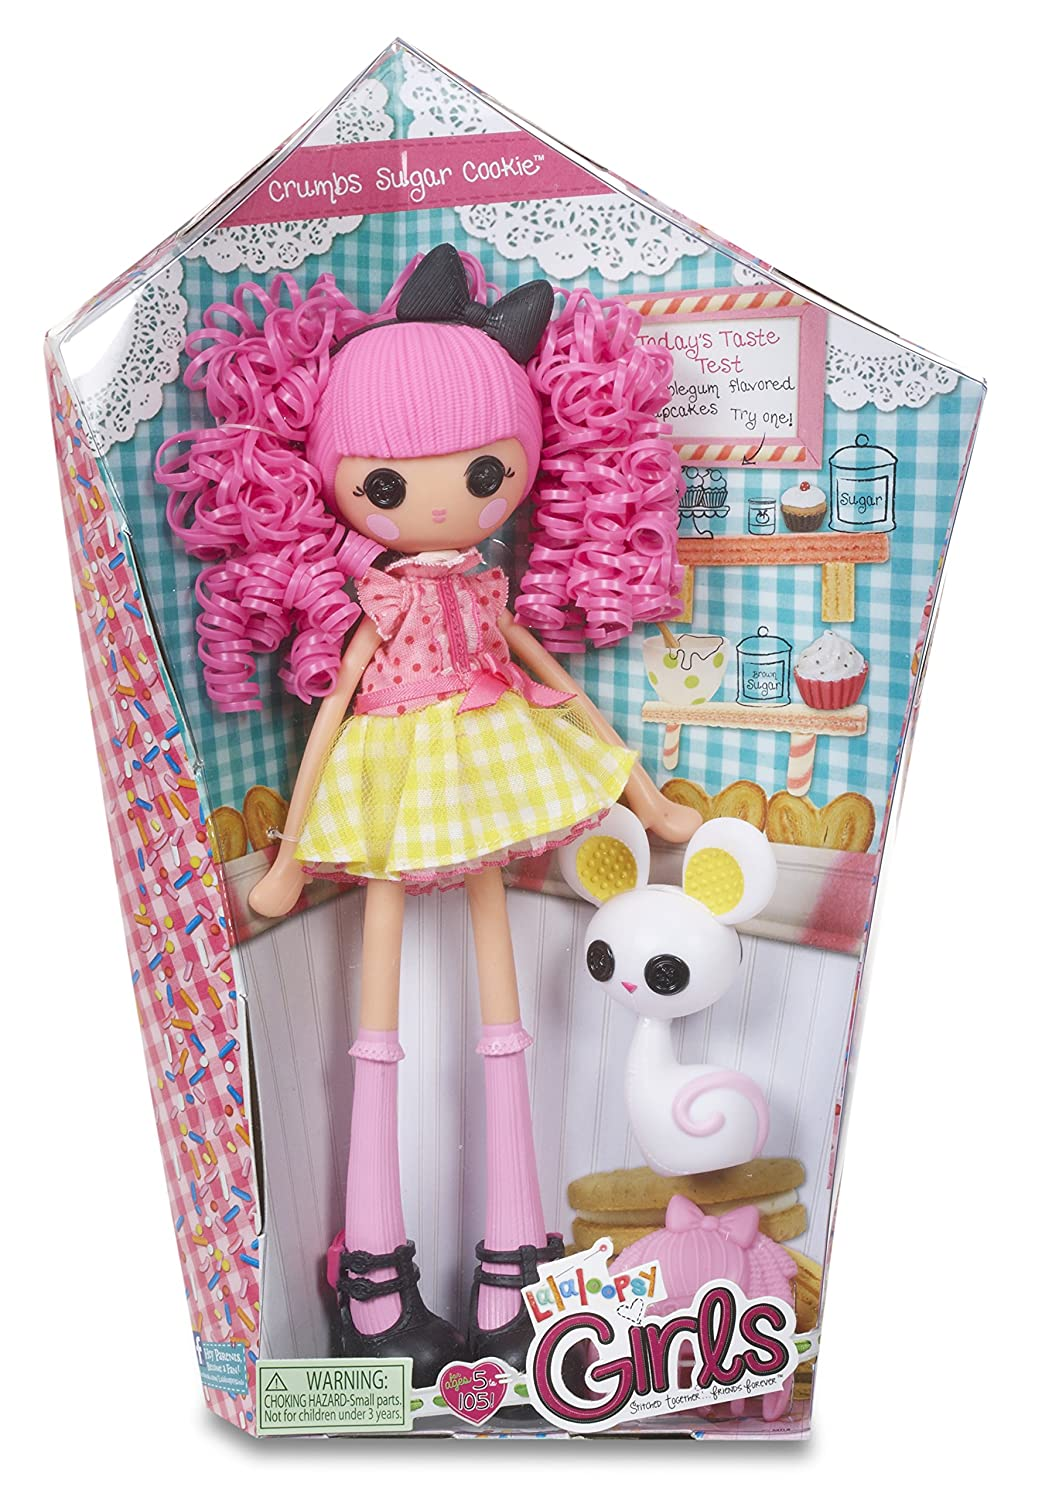 Lalaloopsy Girls Crumbs Sugar Cookie Girls Crumbs Sugar Cookie